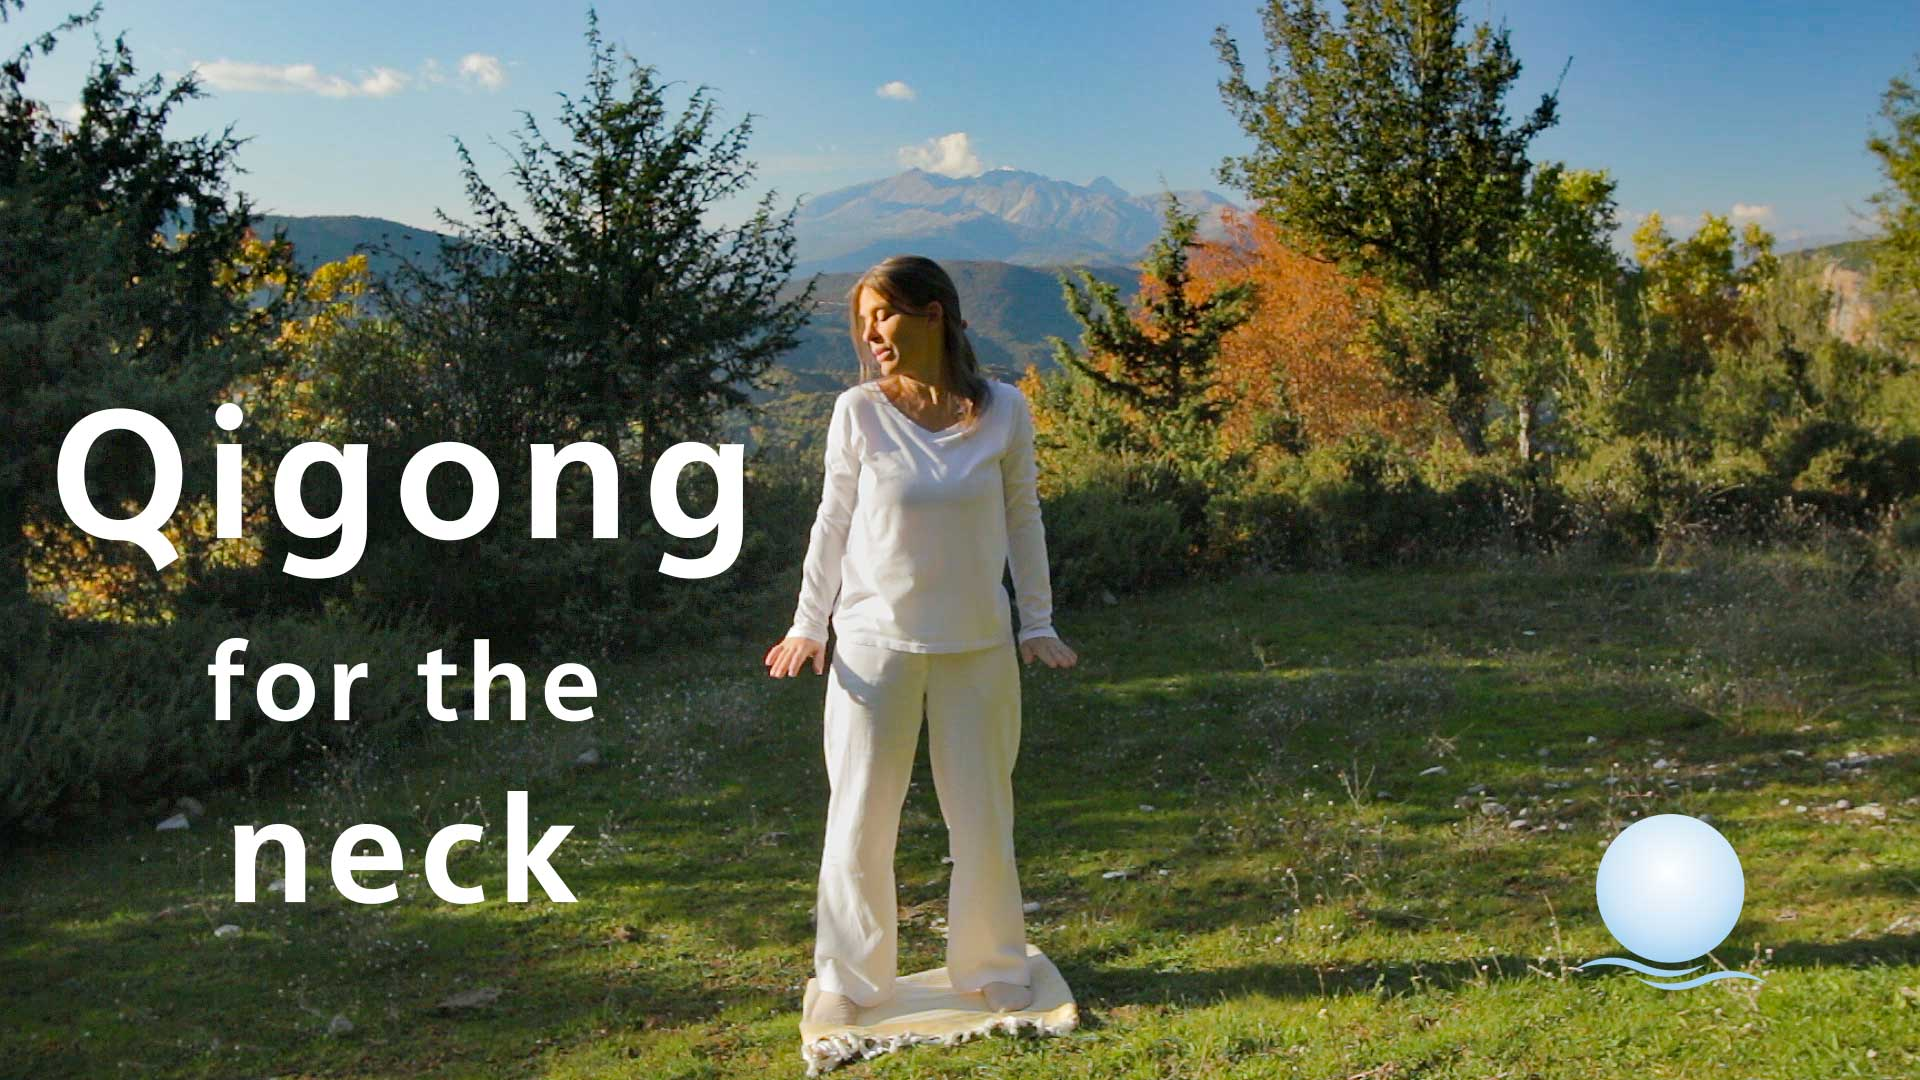 Qigong for the neck